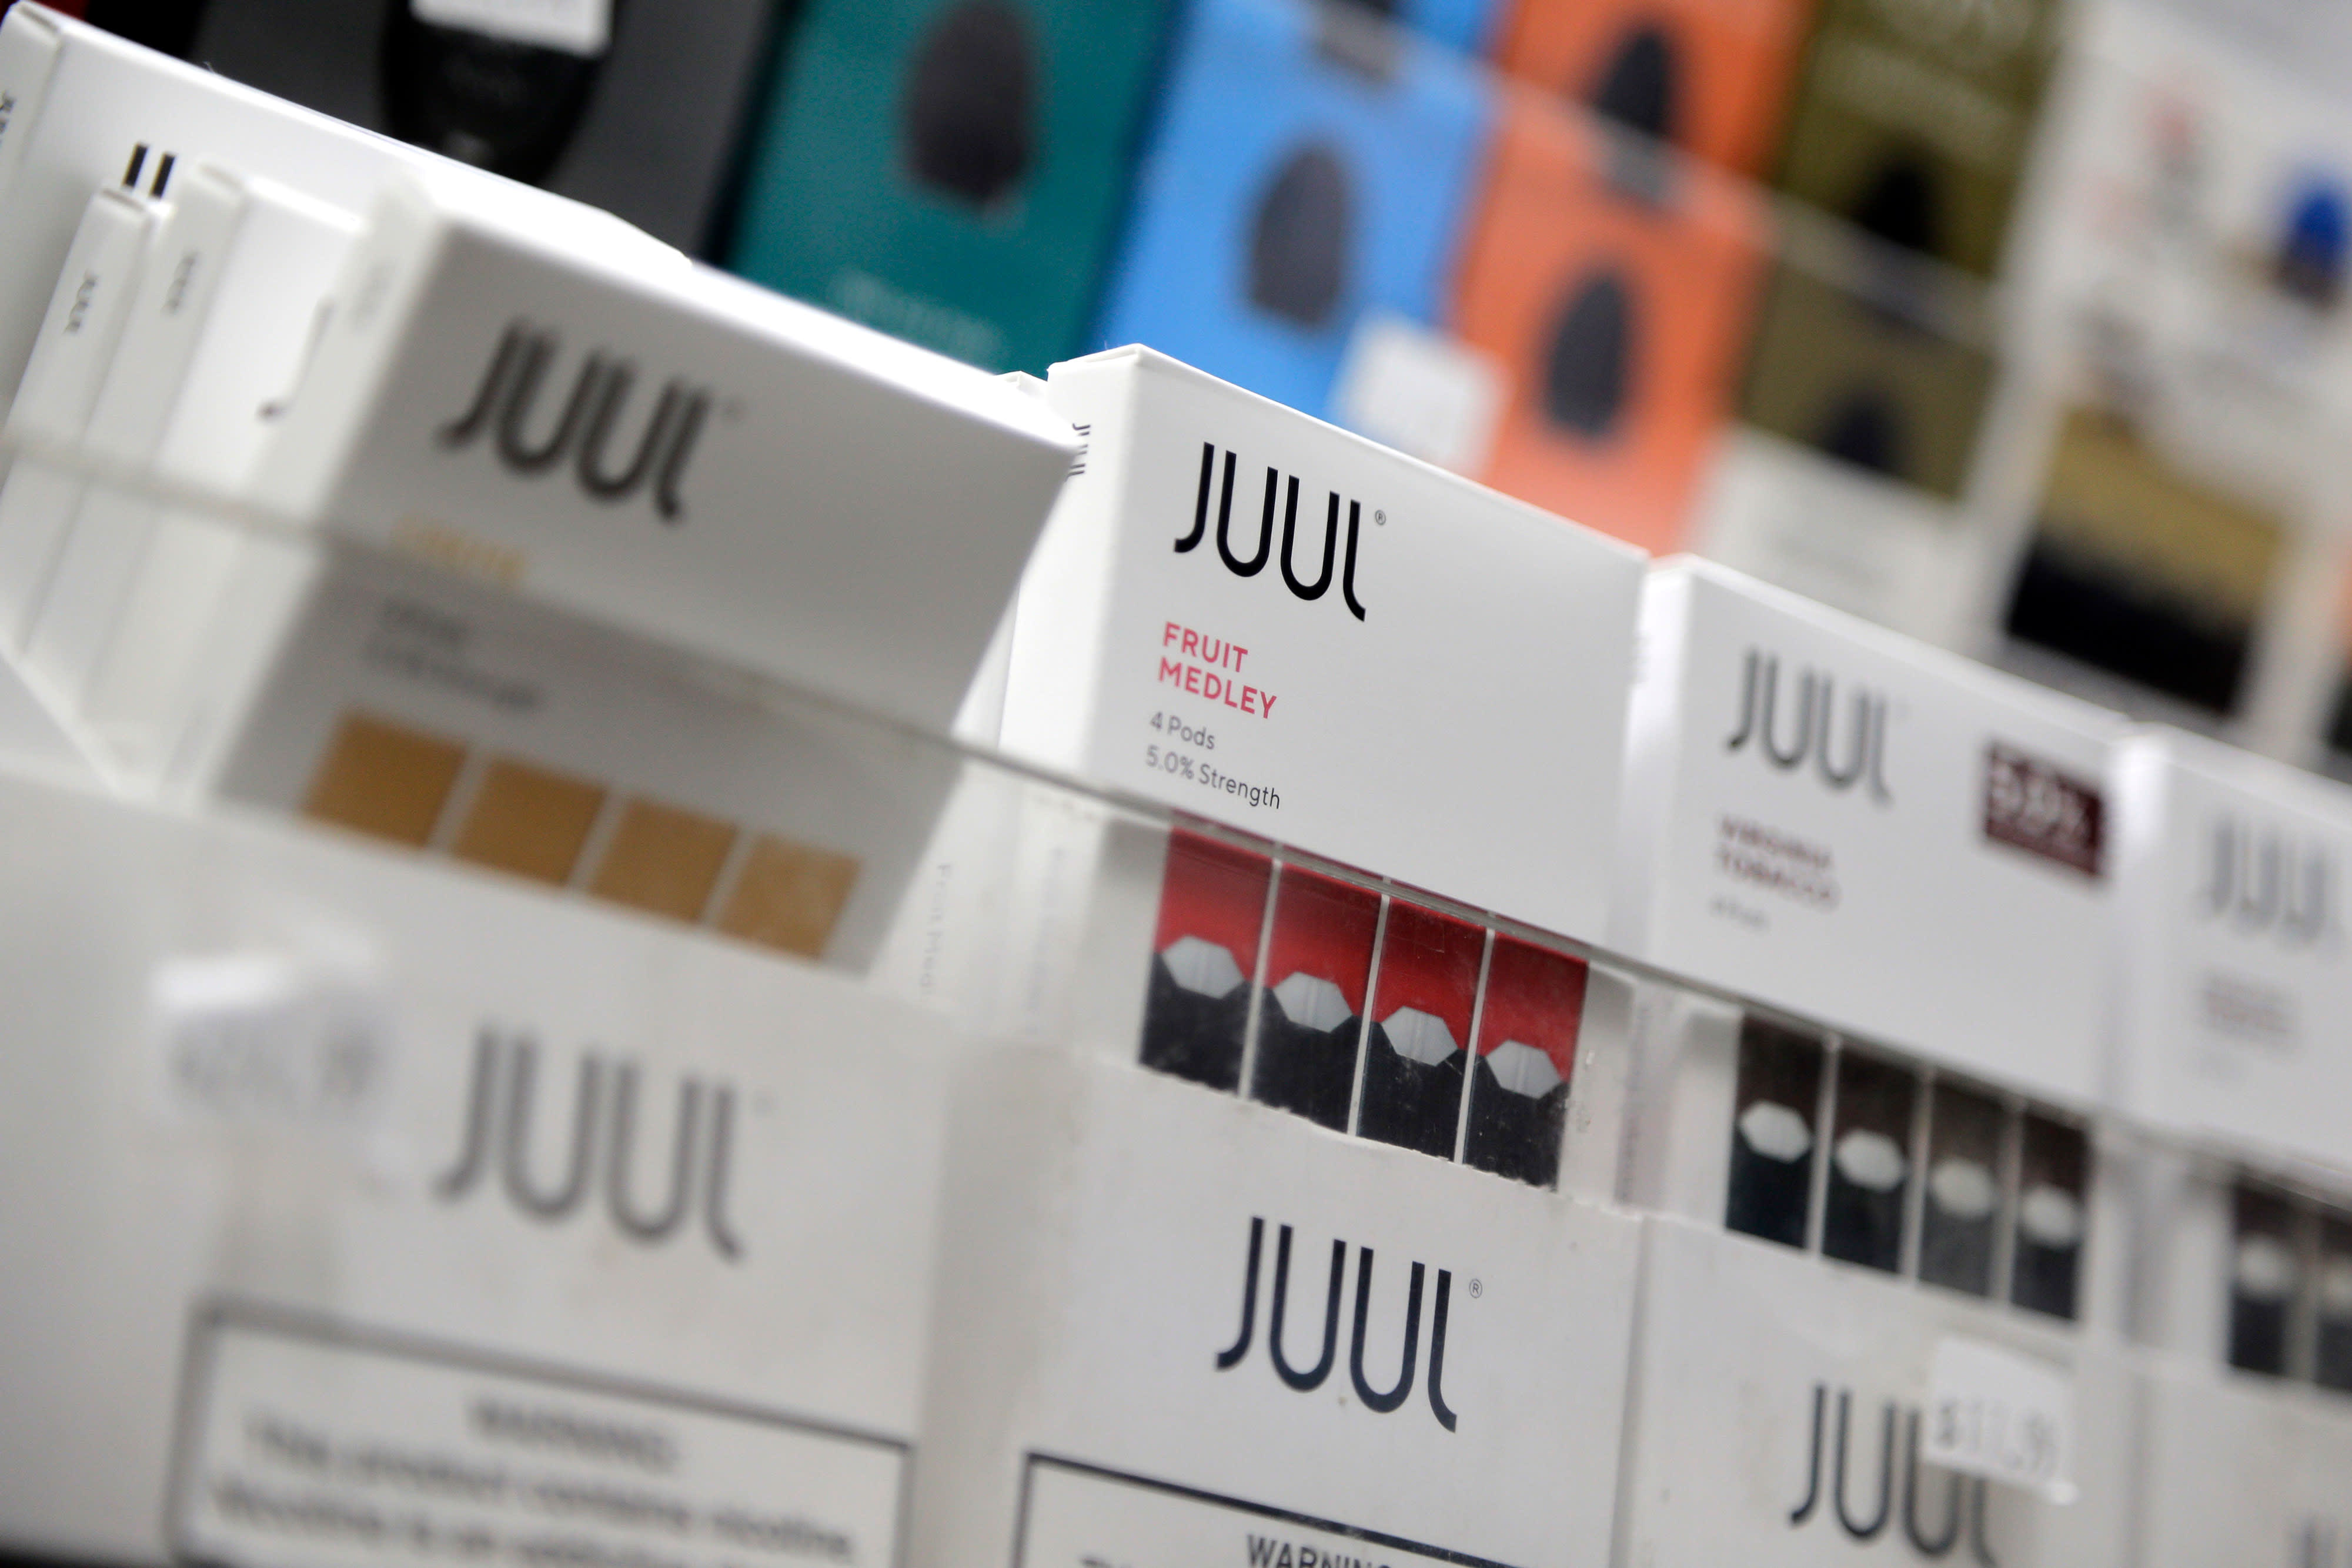 Juul reduces cigarette smoking risk similar to quitting